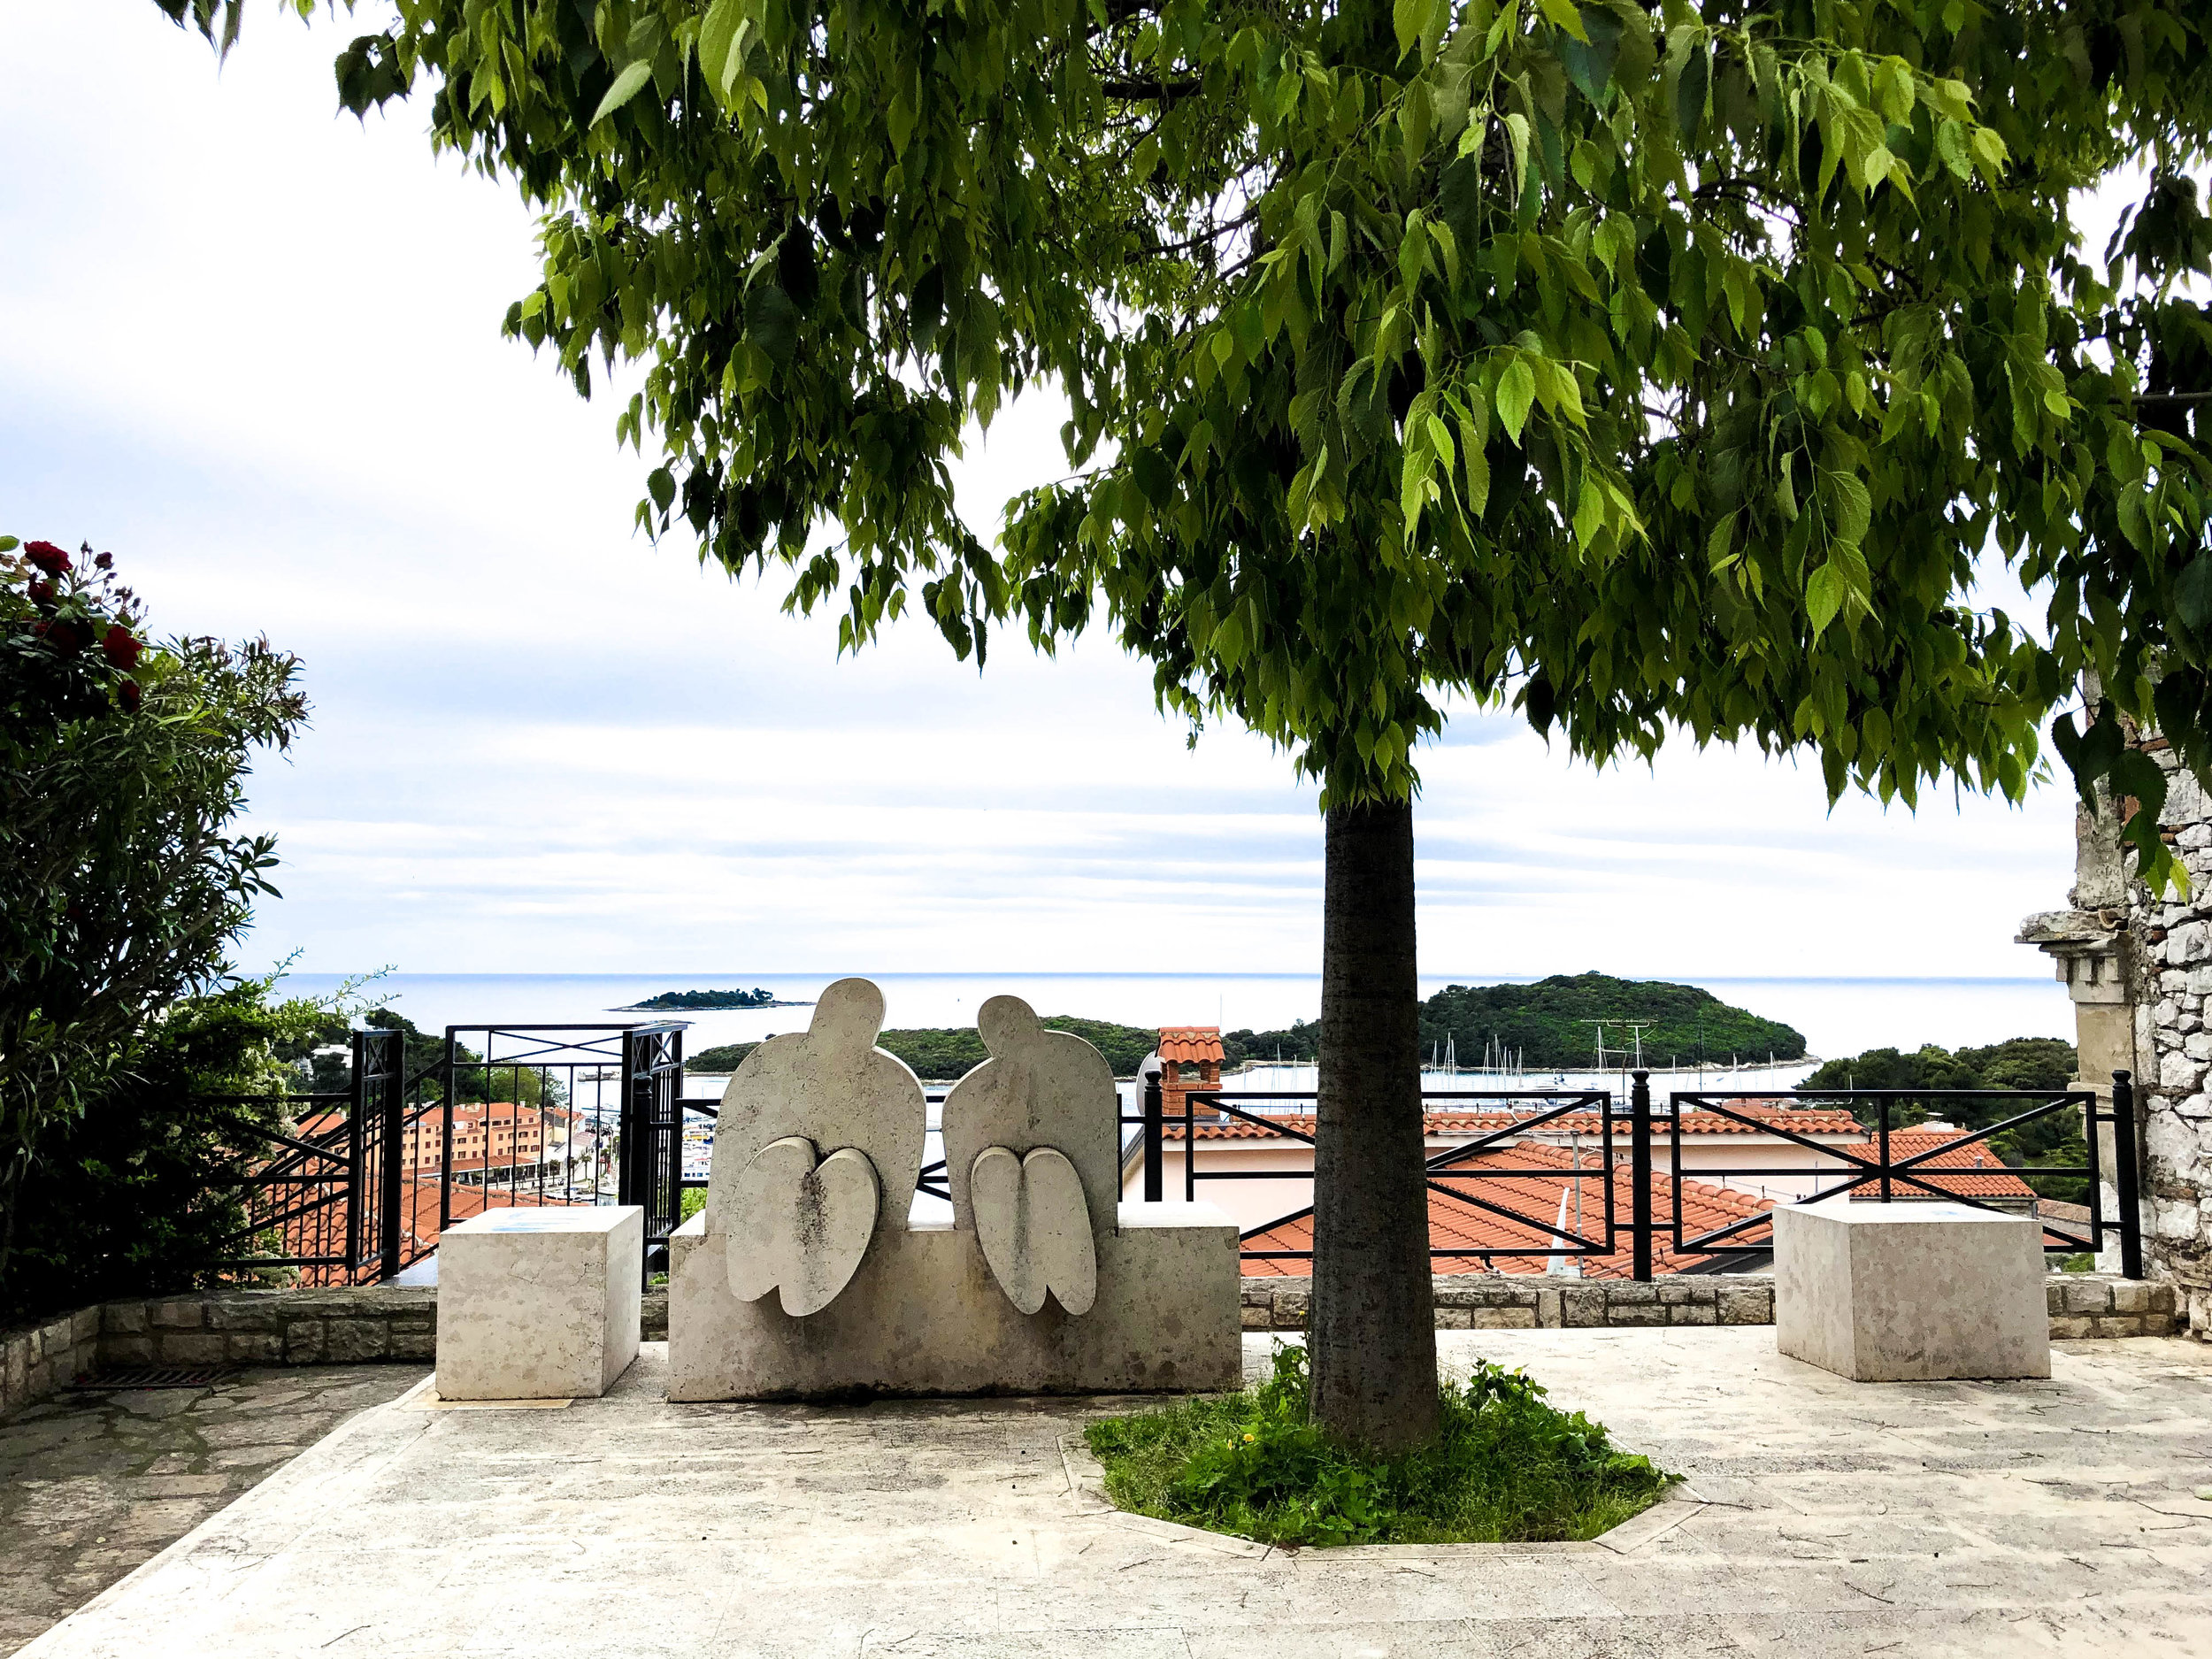 Casanova sculpture in Vrsar, Istria, Croatia